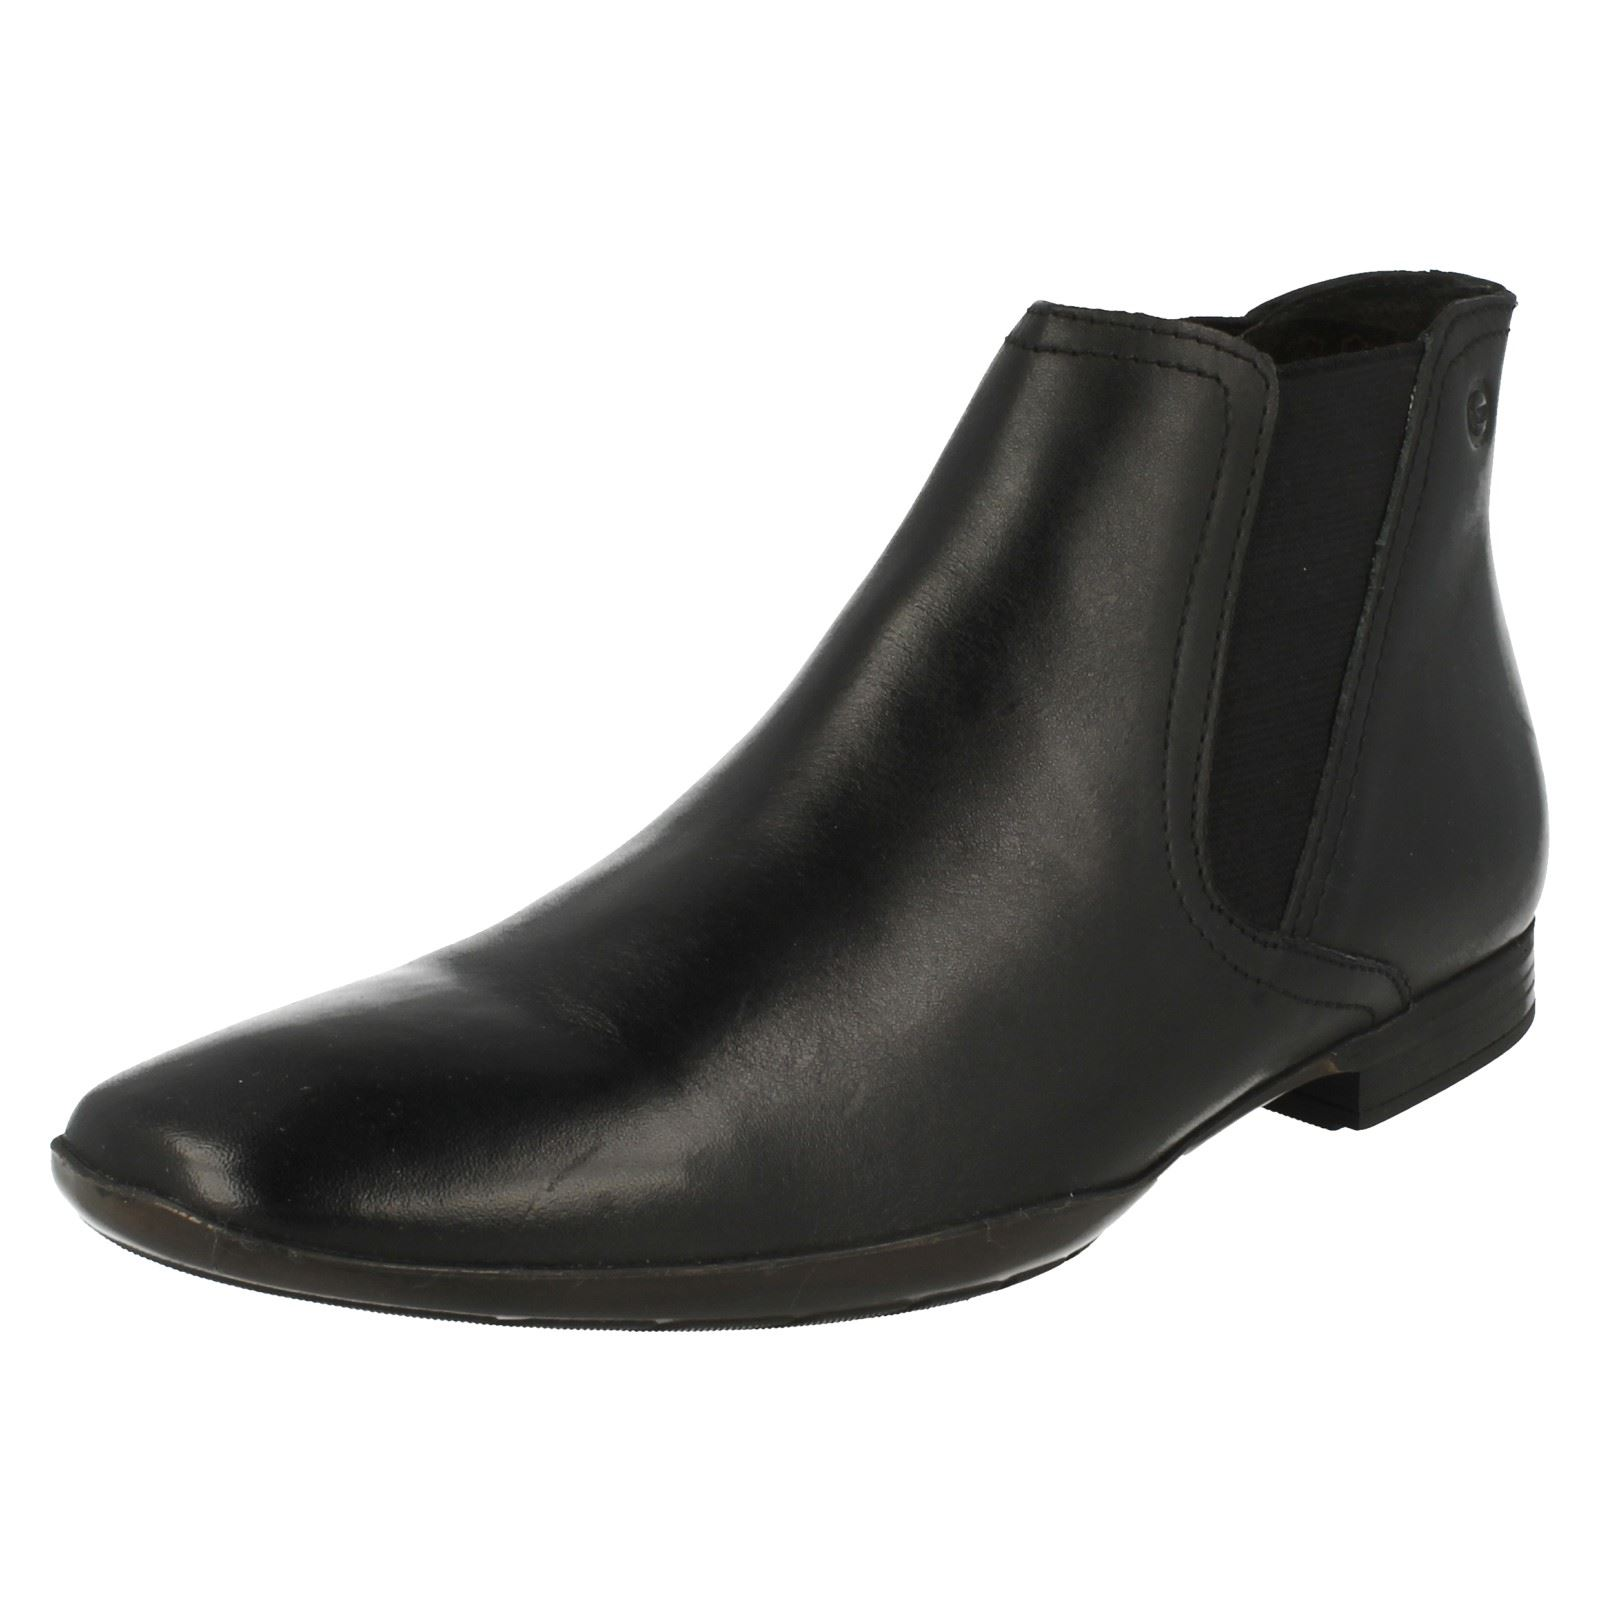 'Mens Base London' Boots Pointed Toe Slip On Ankle Boots London' - Leo 06dc7d